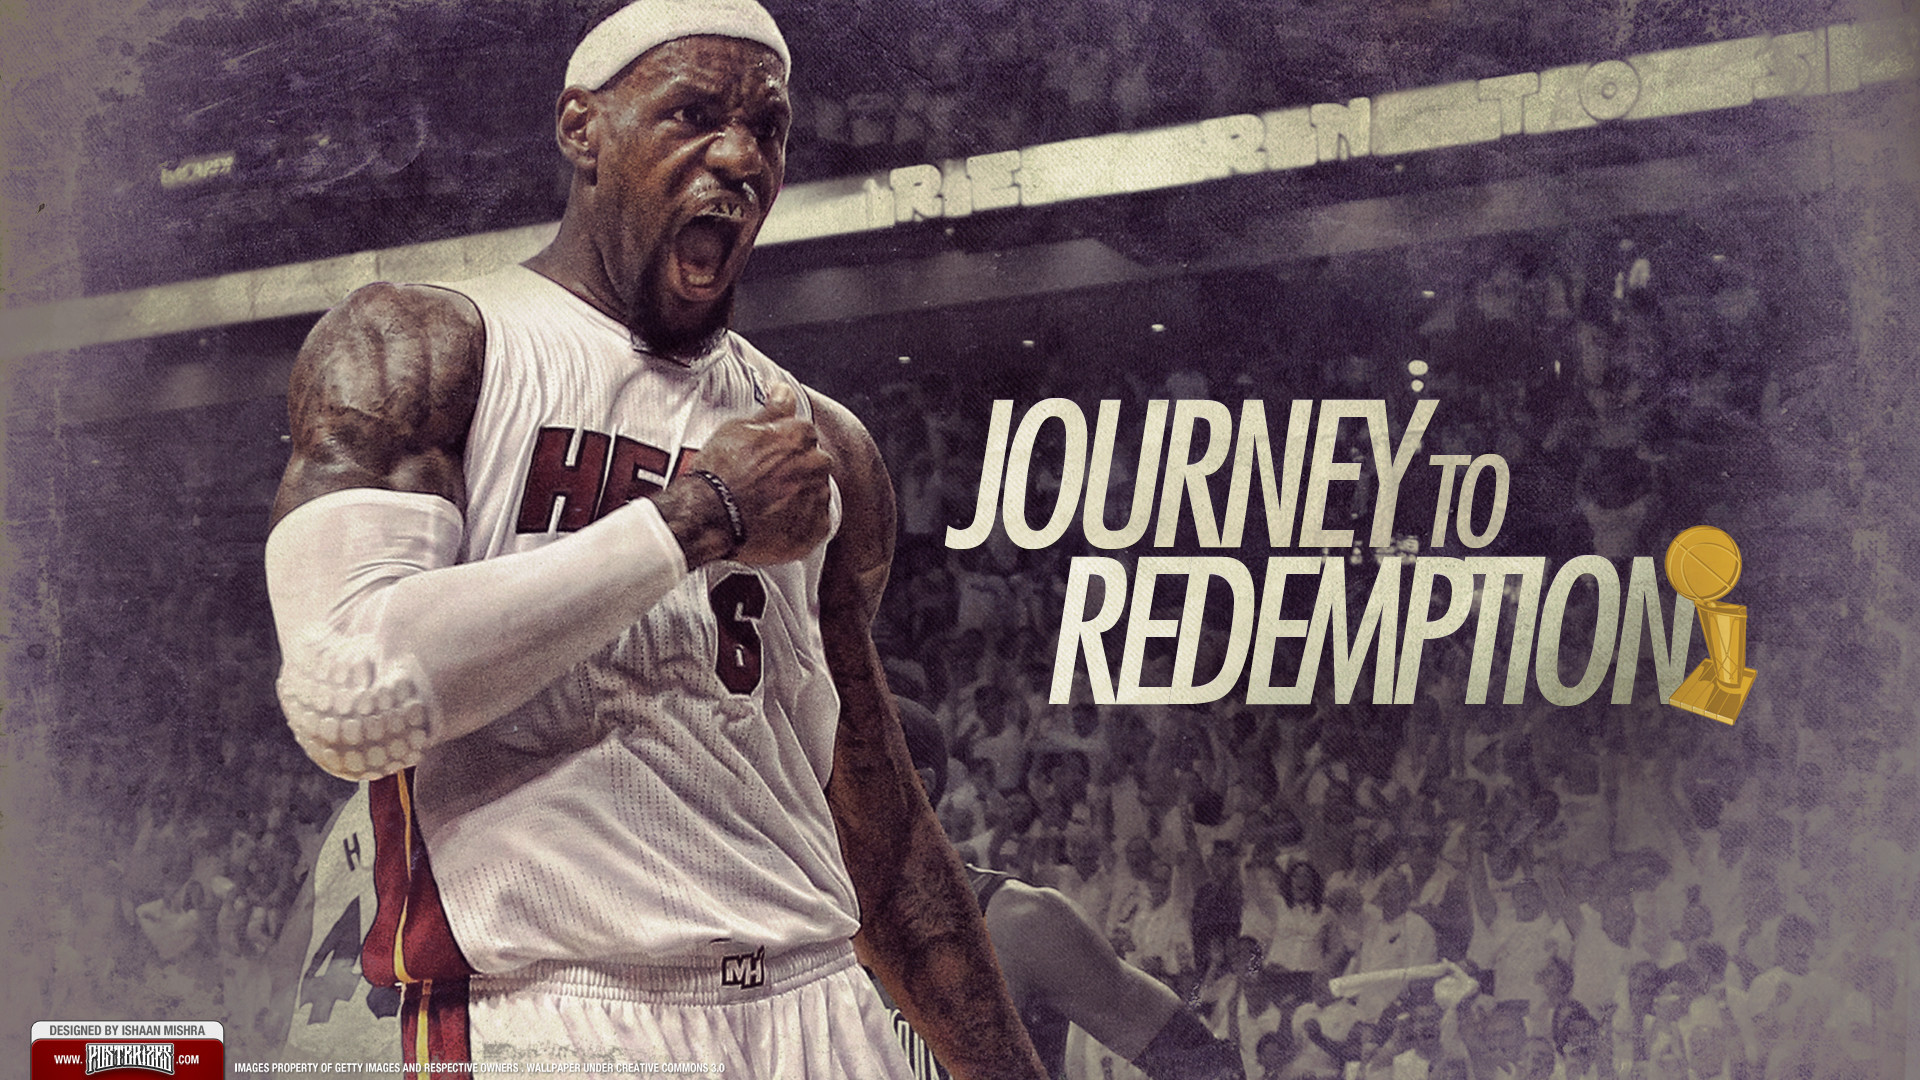 1920x1080 Lebron James Miami Heat Wallpaper Hd wallpaper